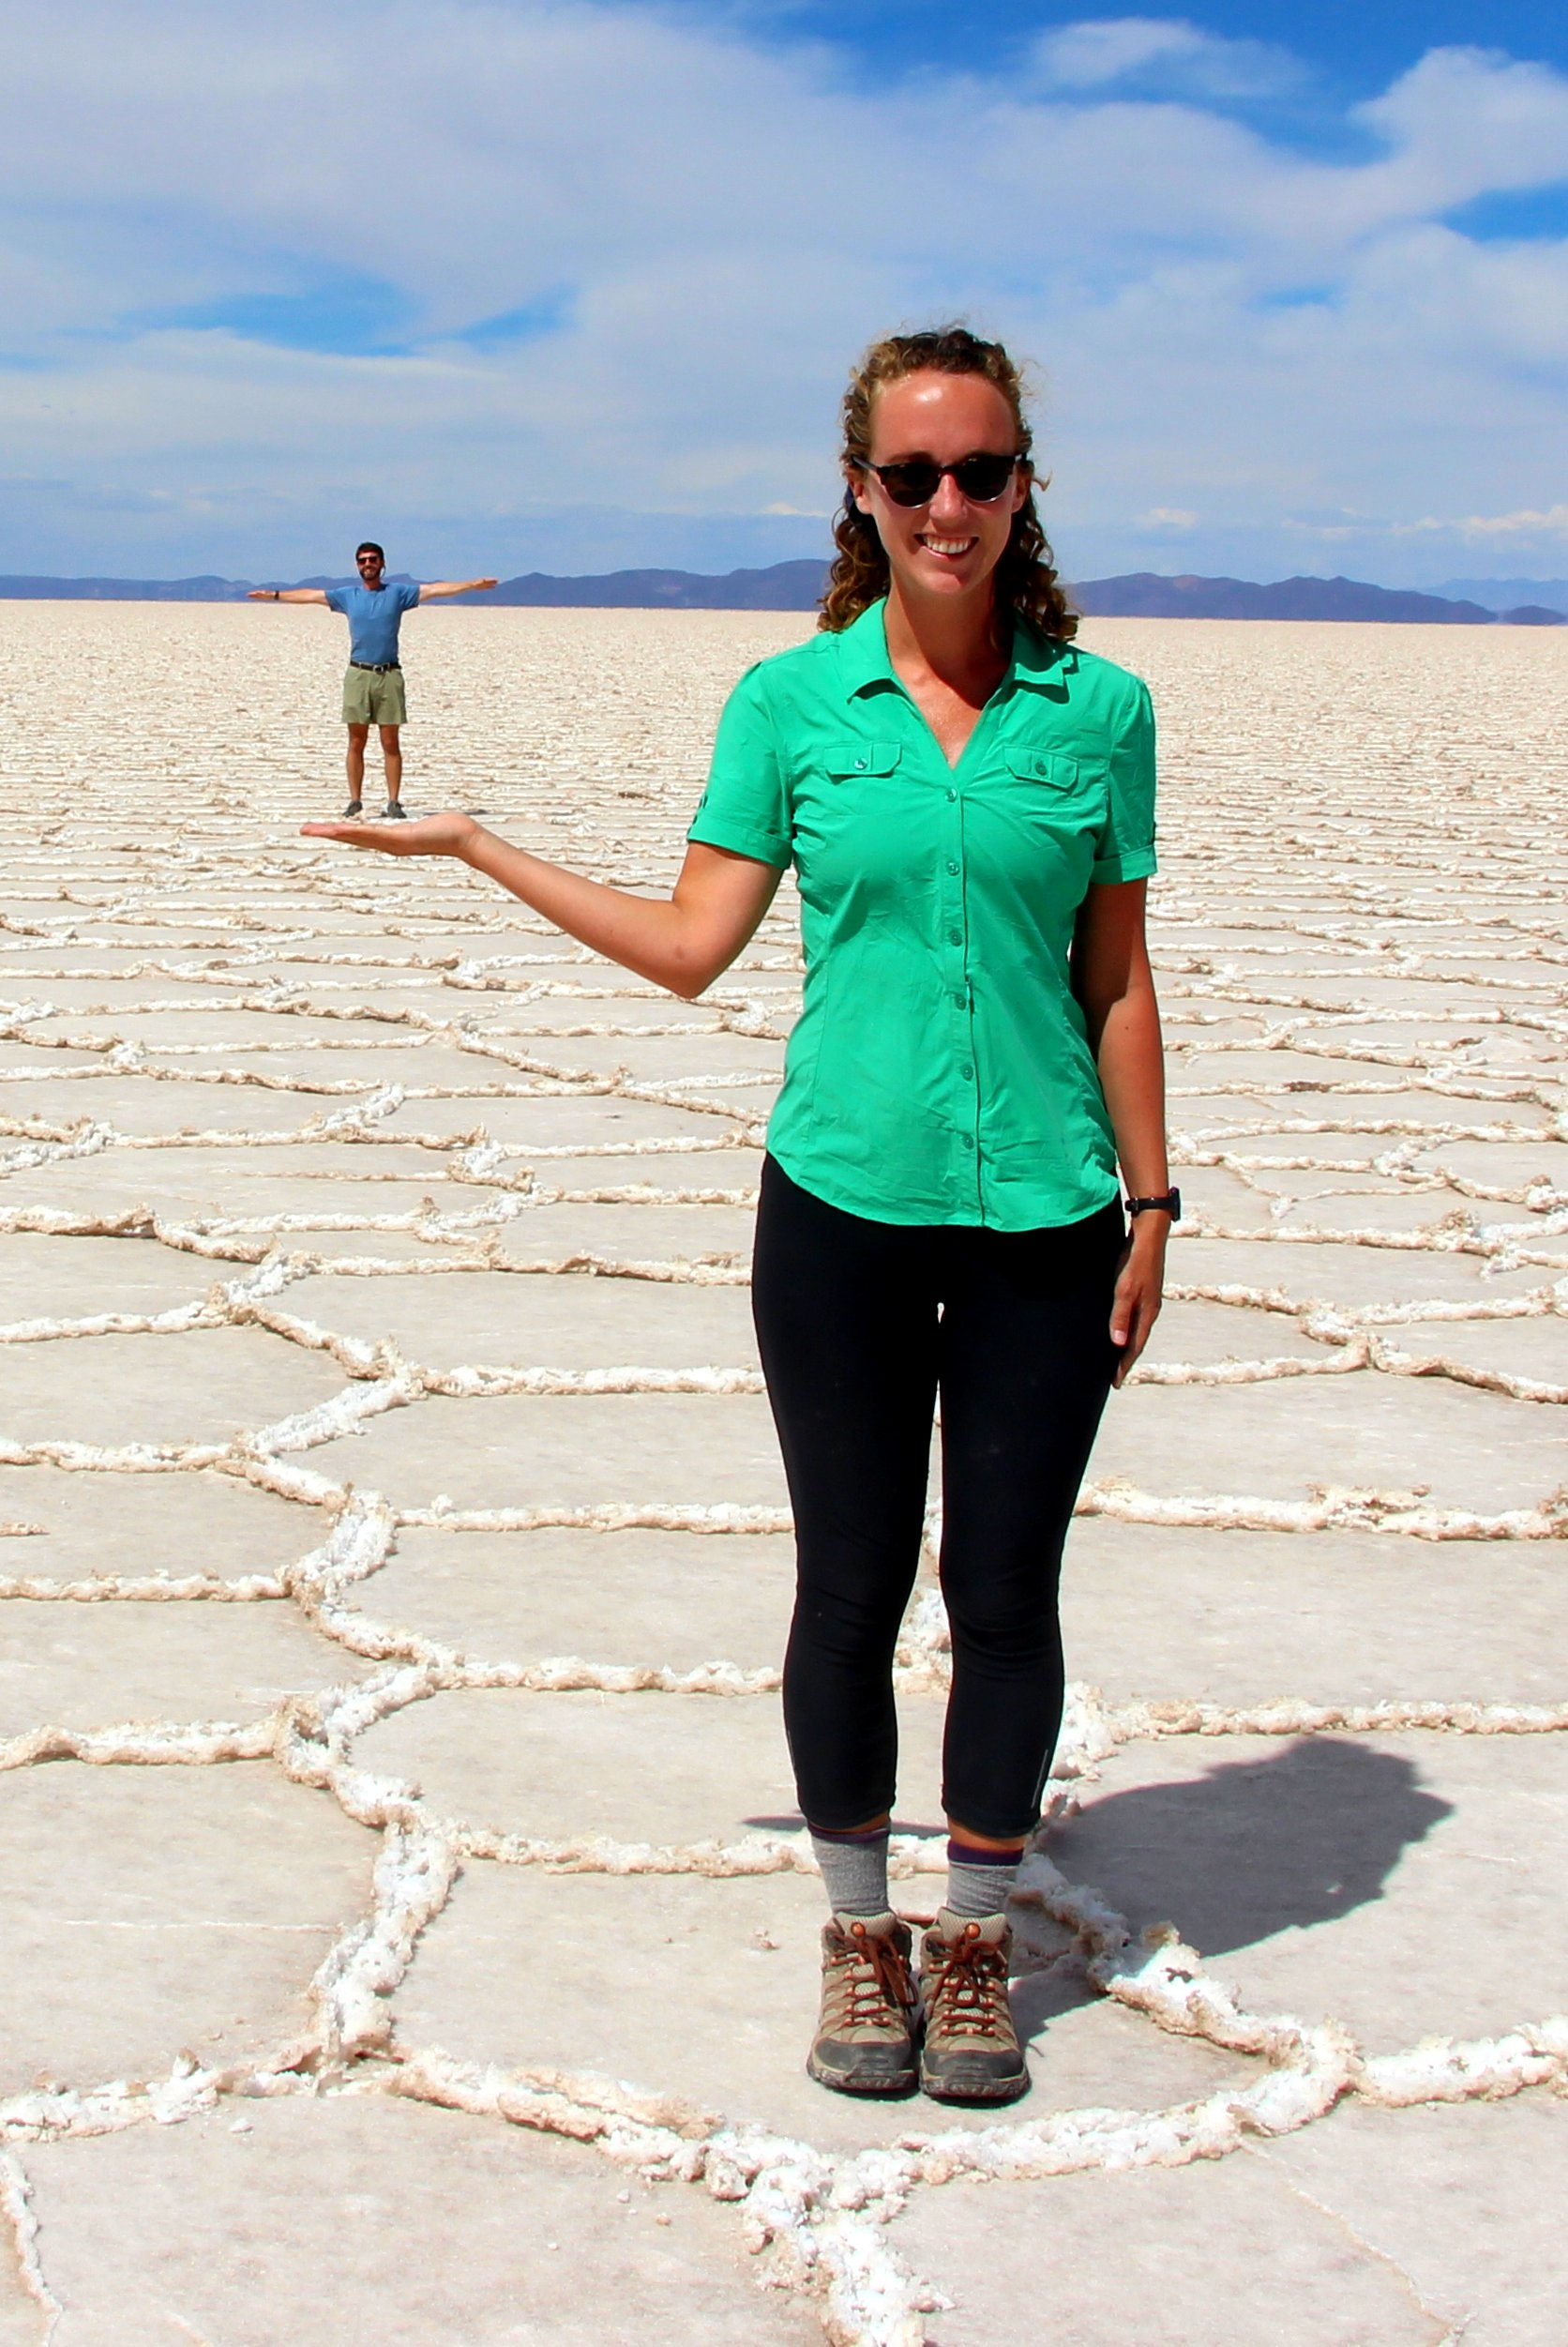 Bolivia Salt Flats Weird Pose